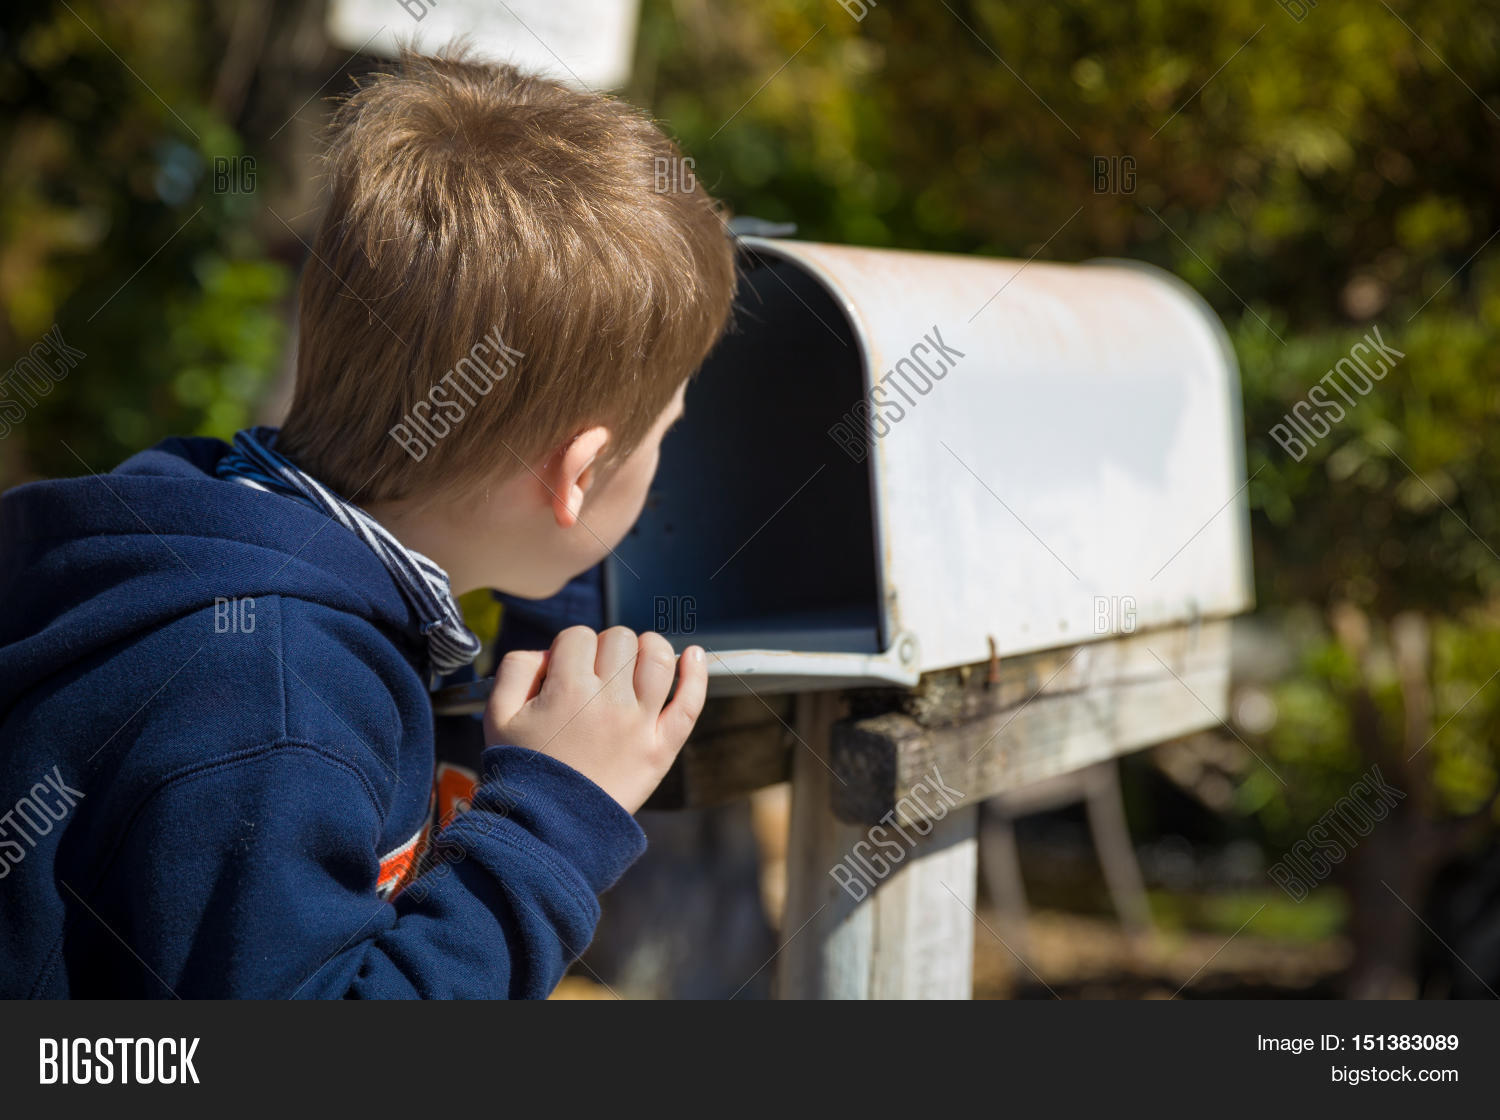 Waiting For Mail >> School Boy Opening Image Photo Free Trial Bigstock